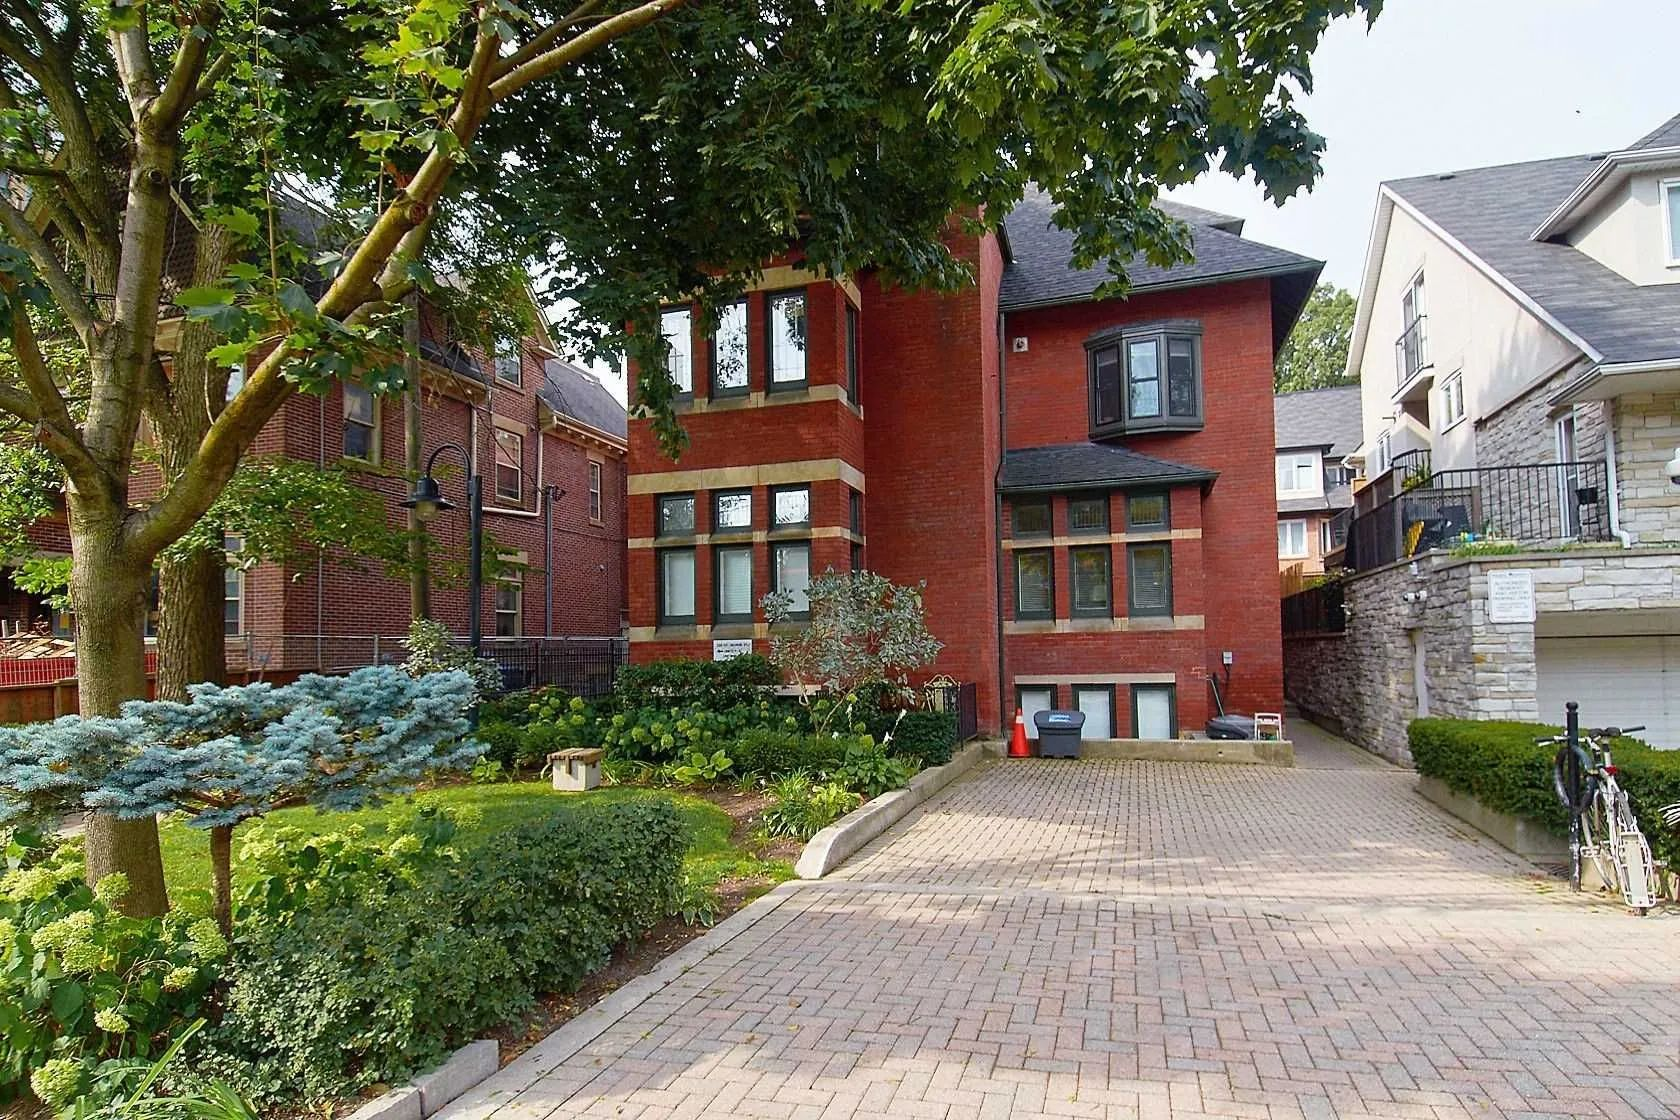 228 St George St. This condo townhouse at 228 St George St Townhomes is located in  Downtown, Toronto